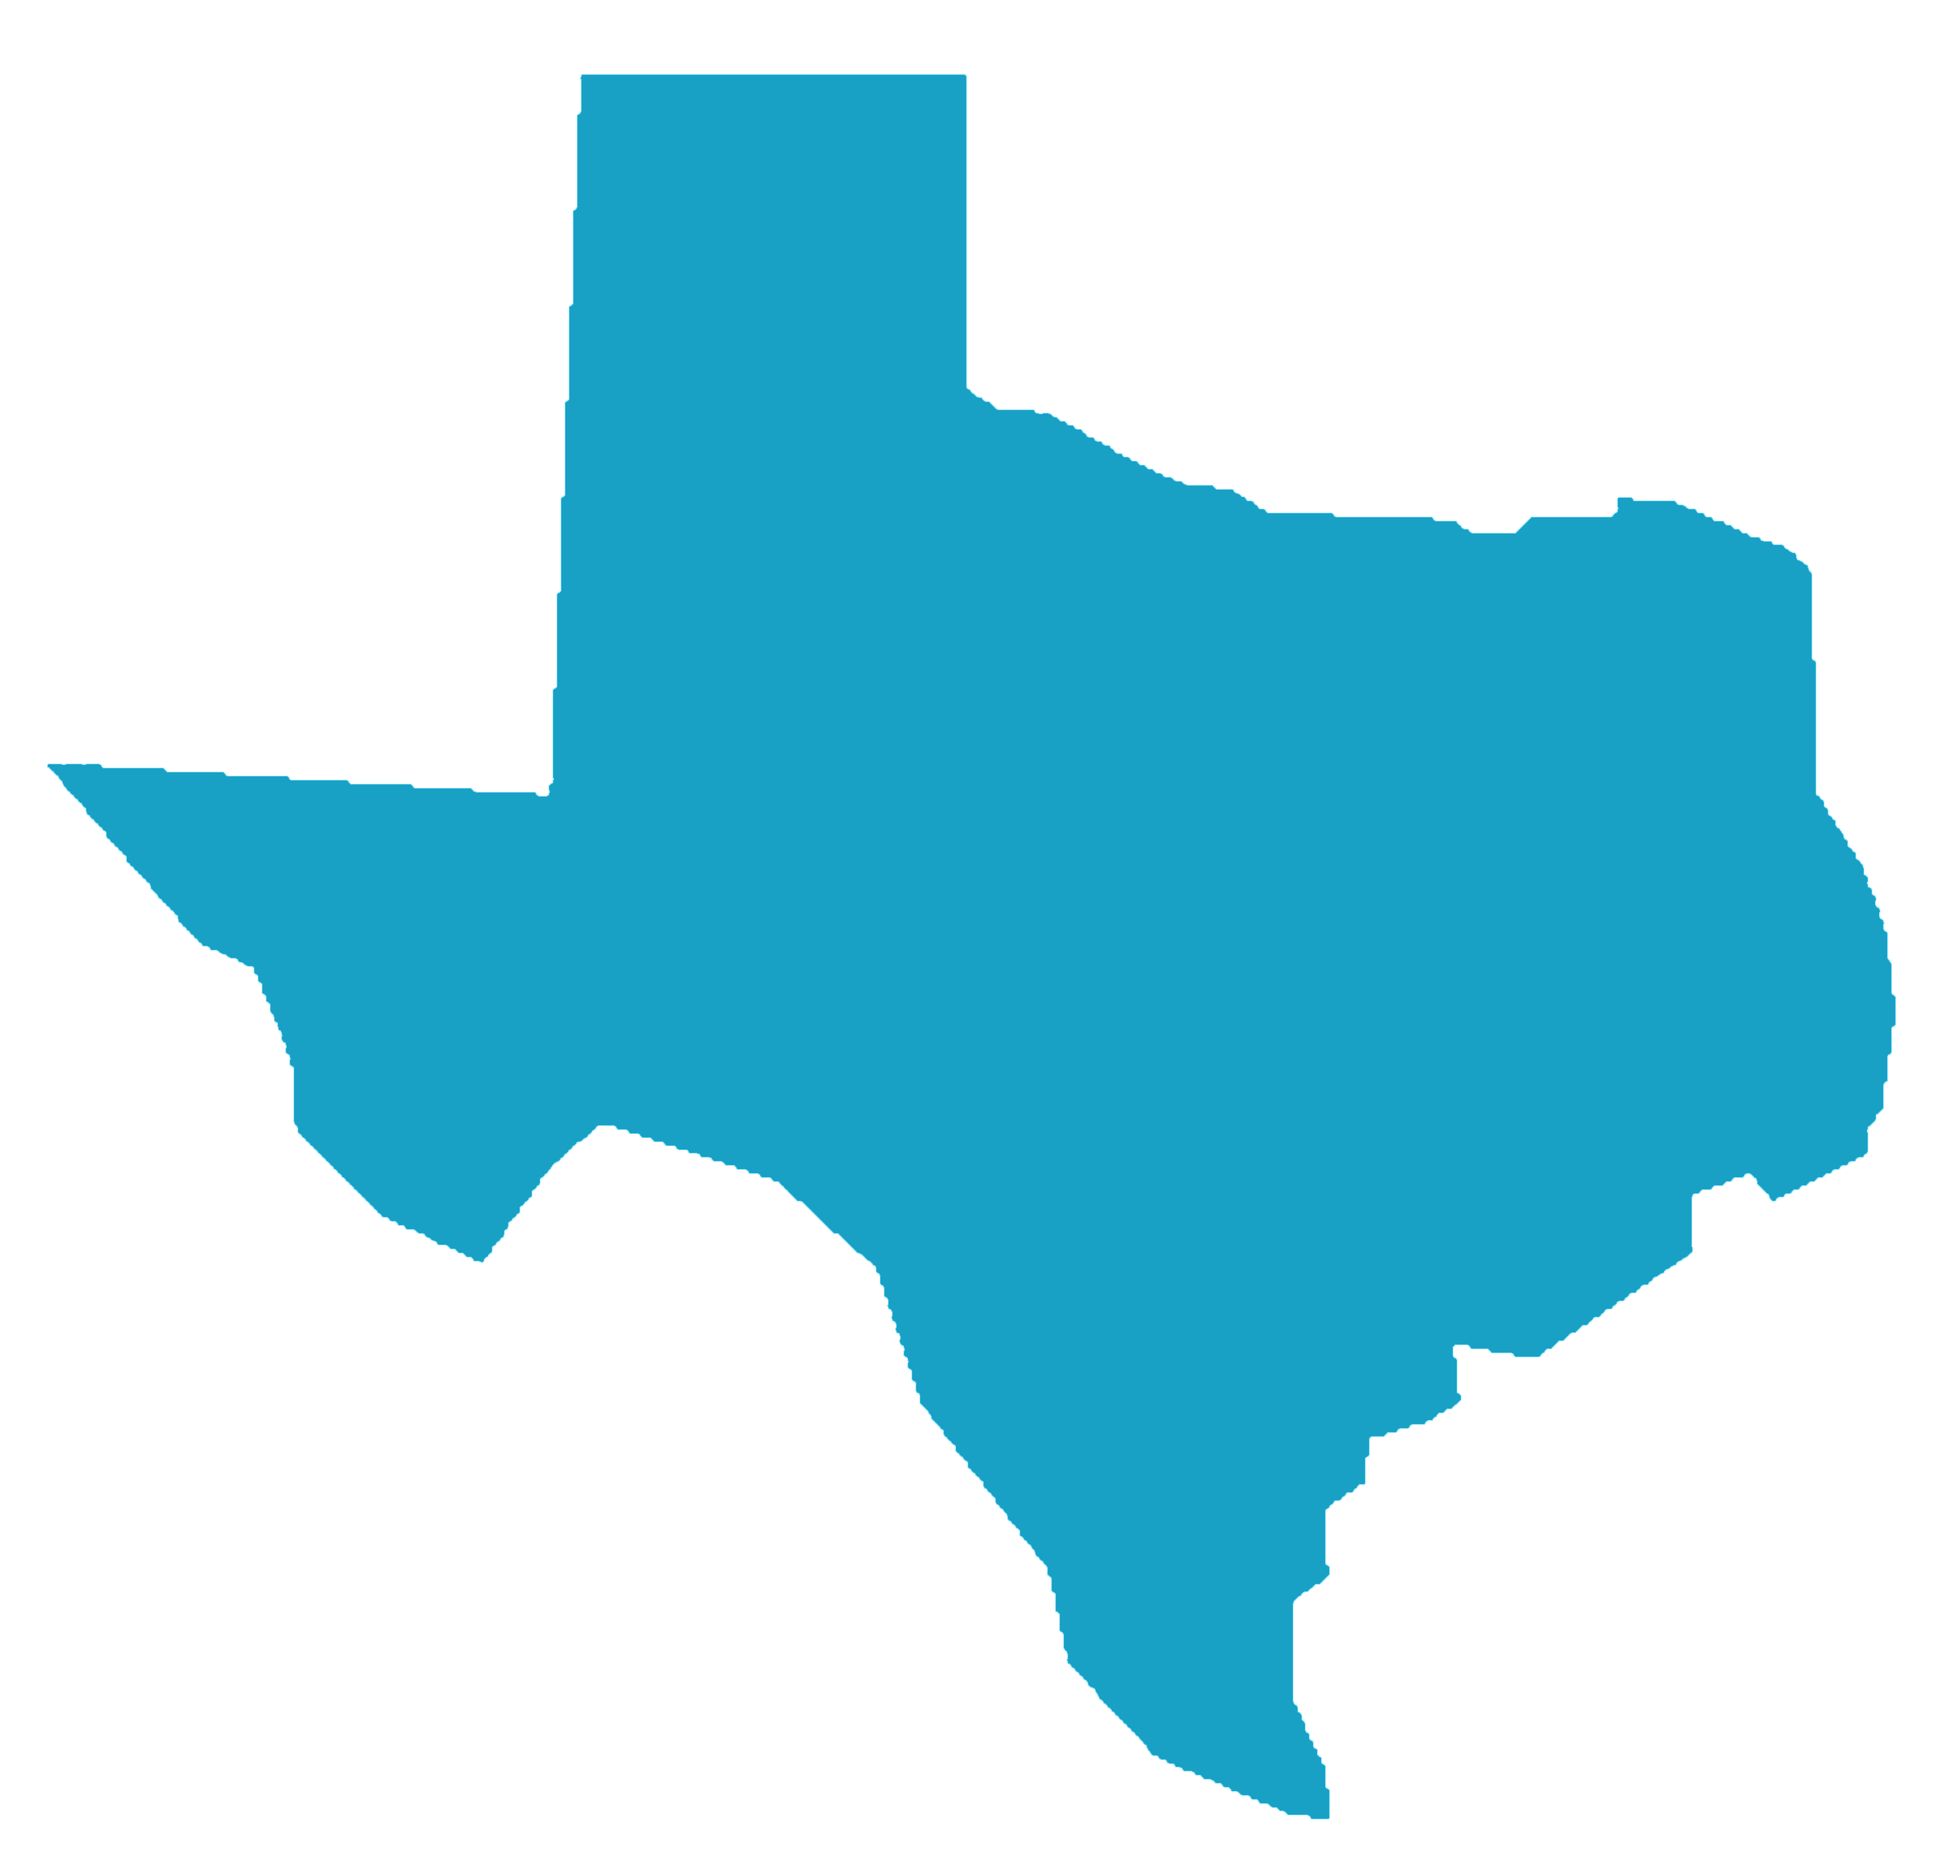 Longhorn clipart outline. Images of texas free